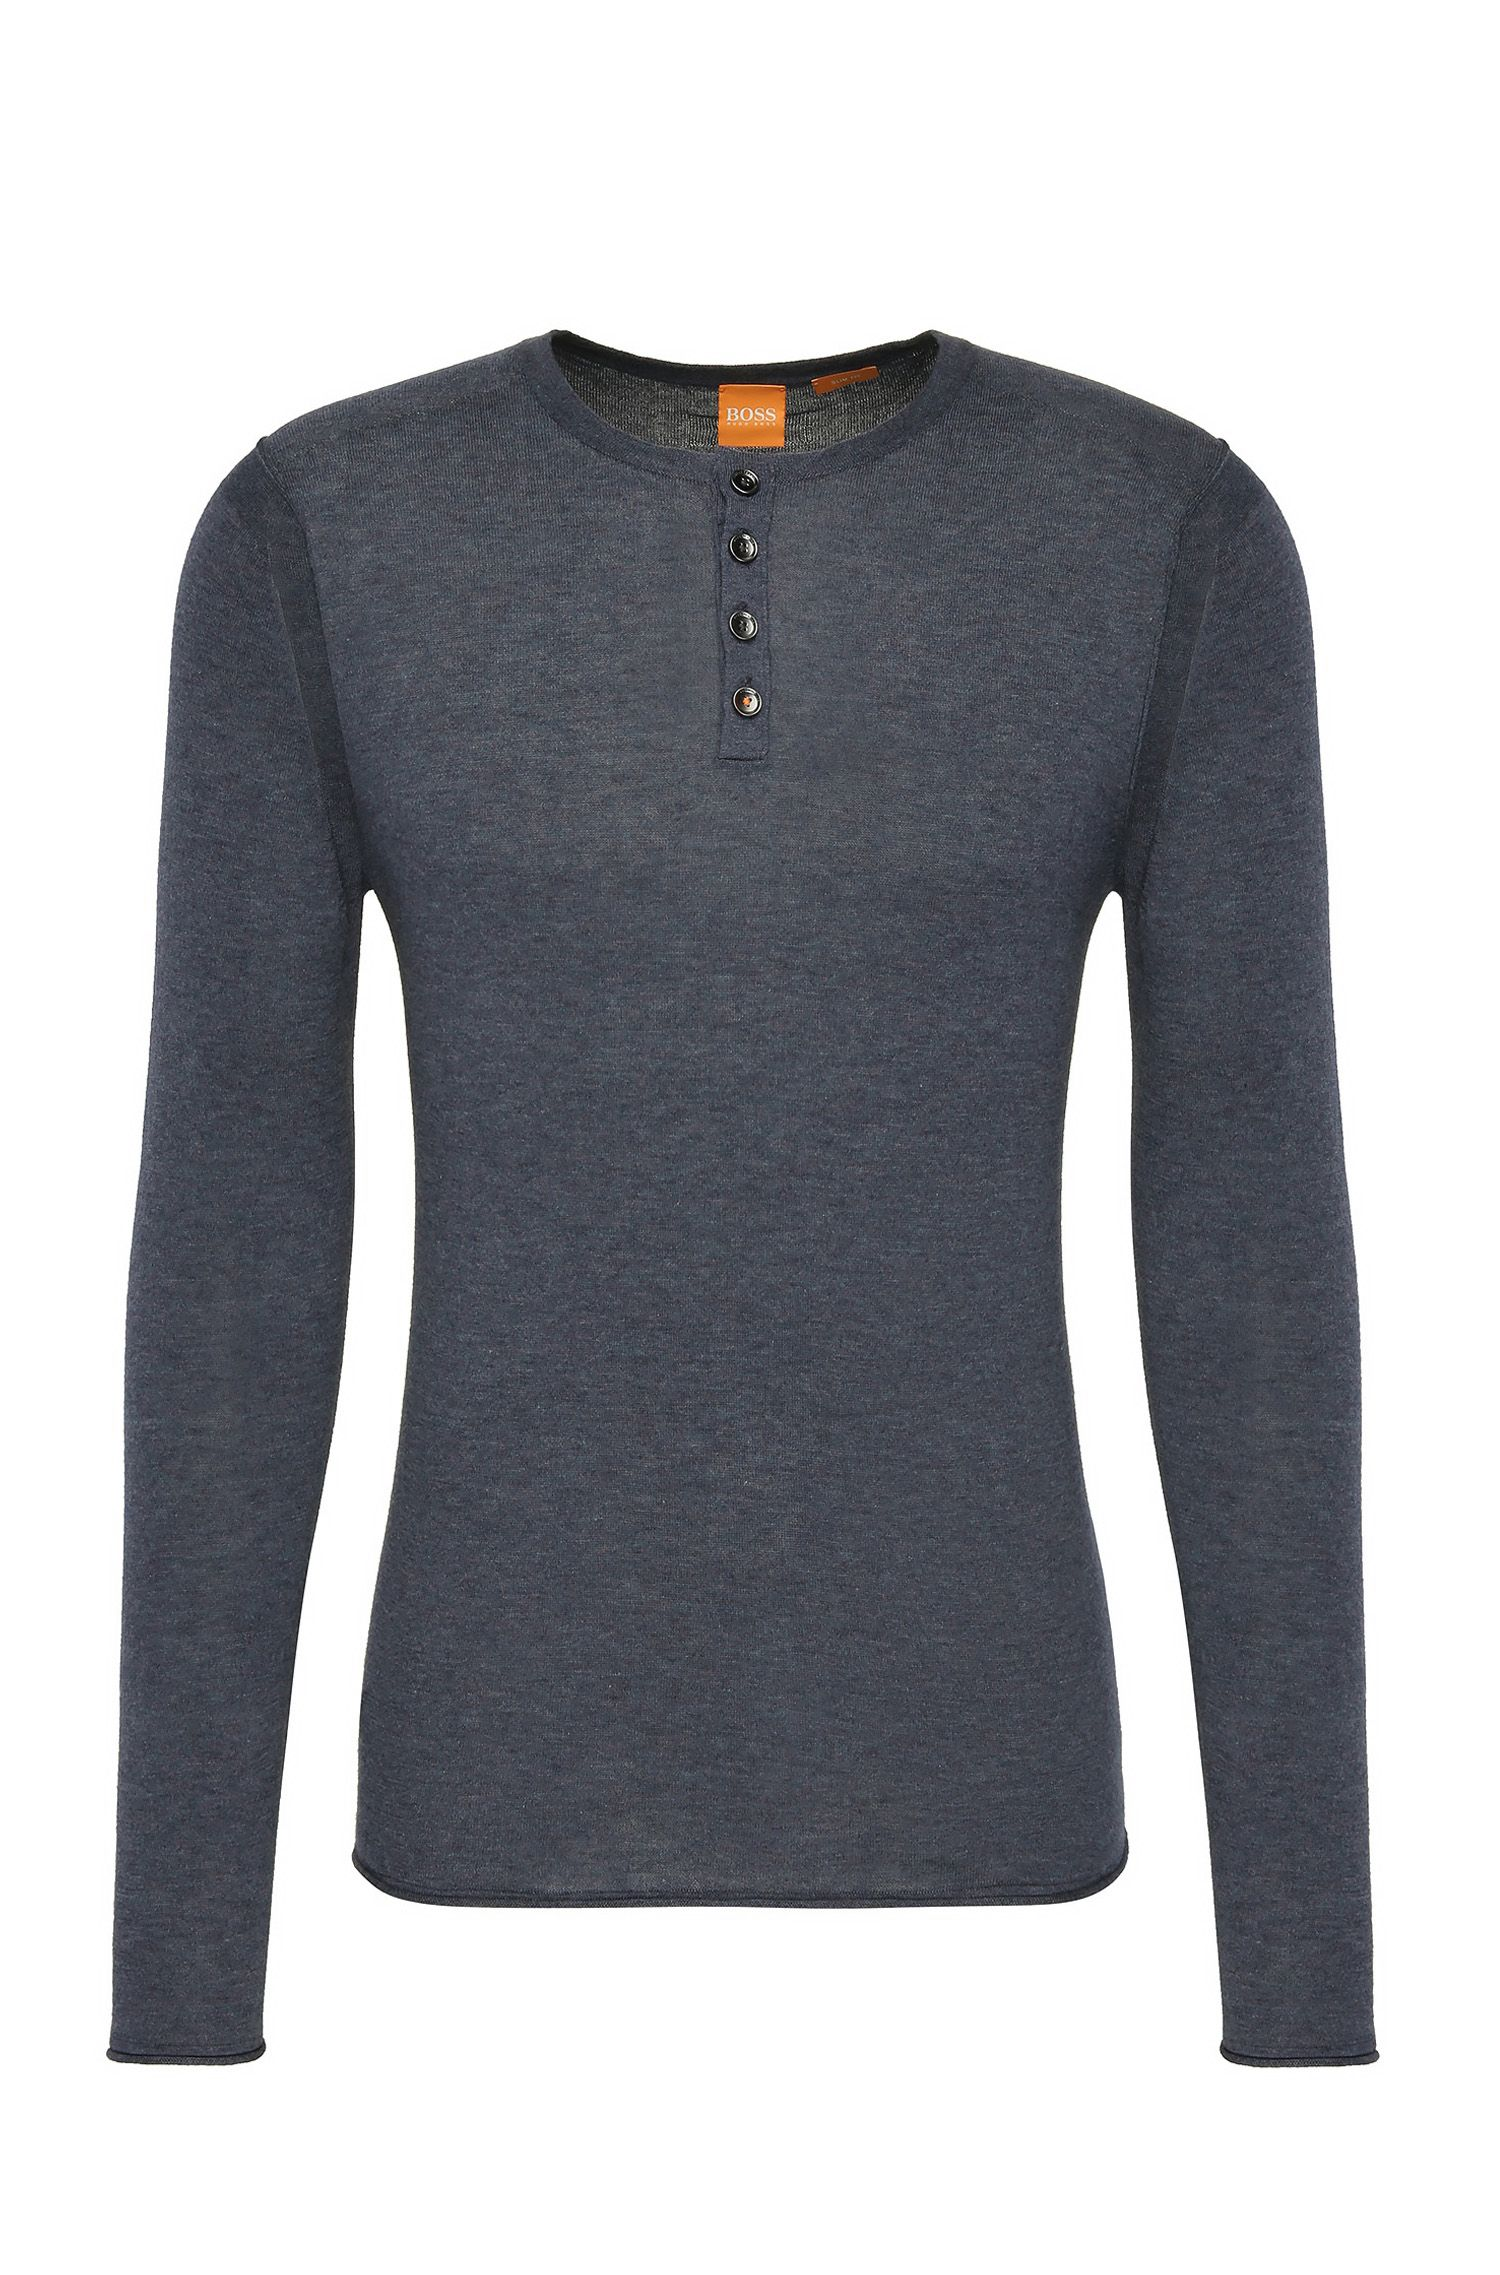 Slim-fit sweater in lightweight knitted cotton: 'Koastly'